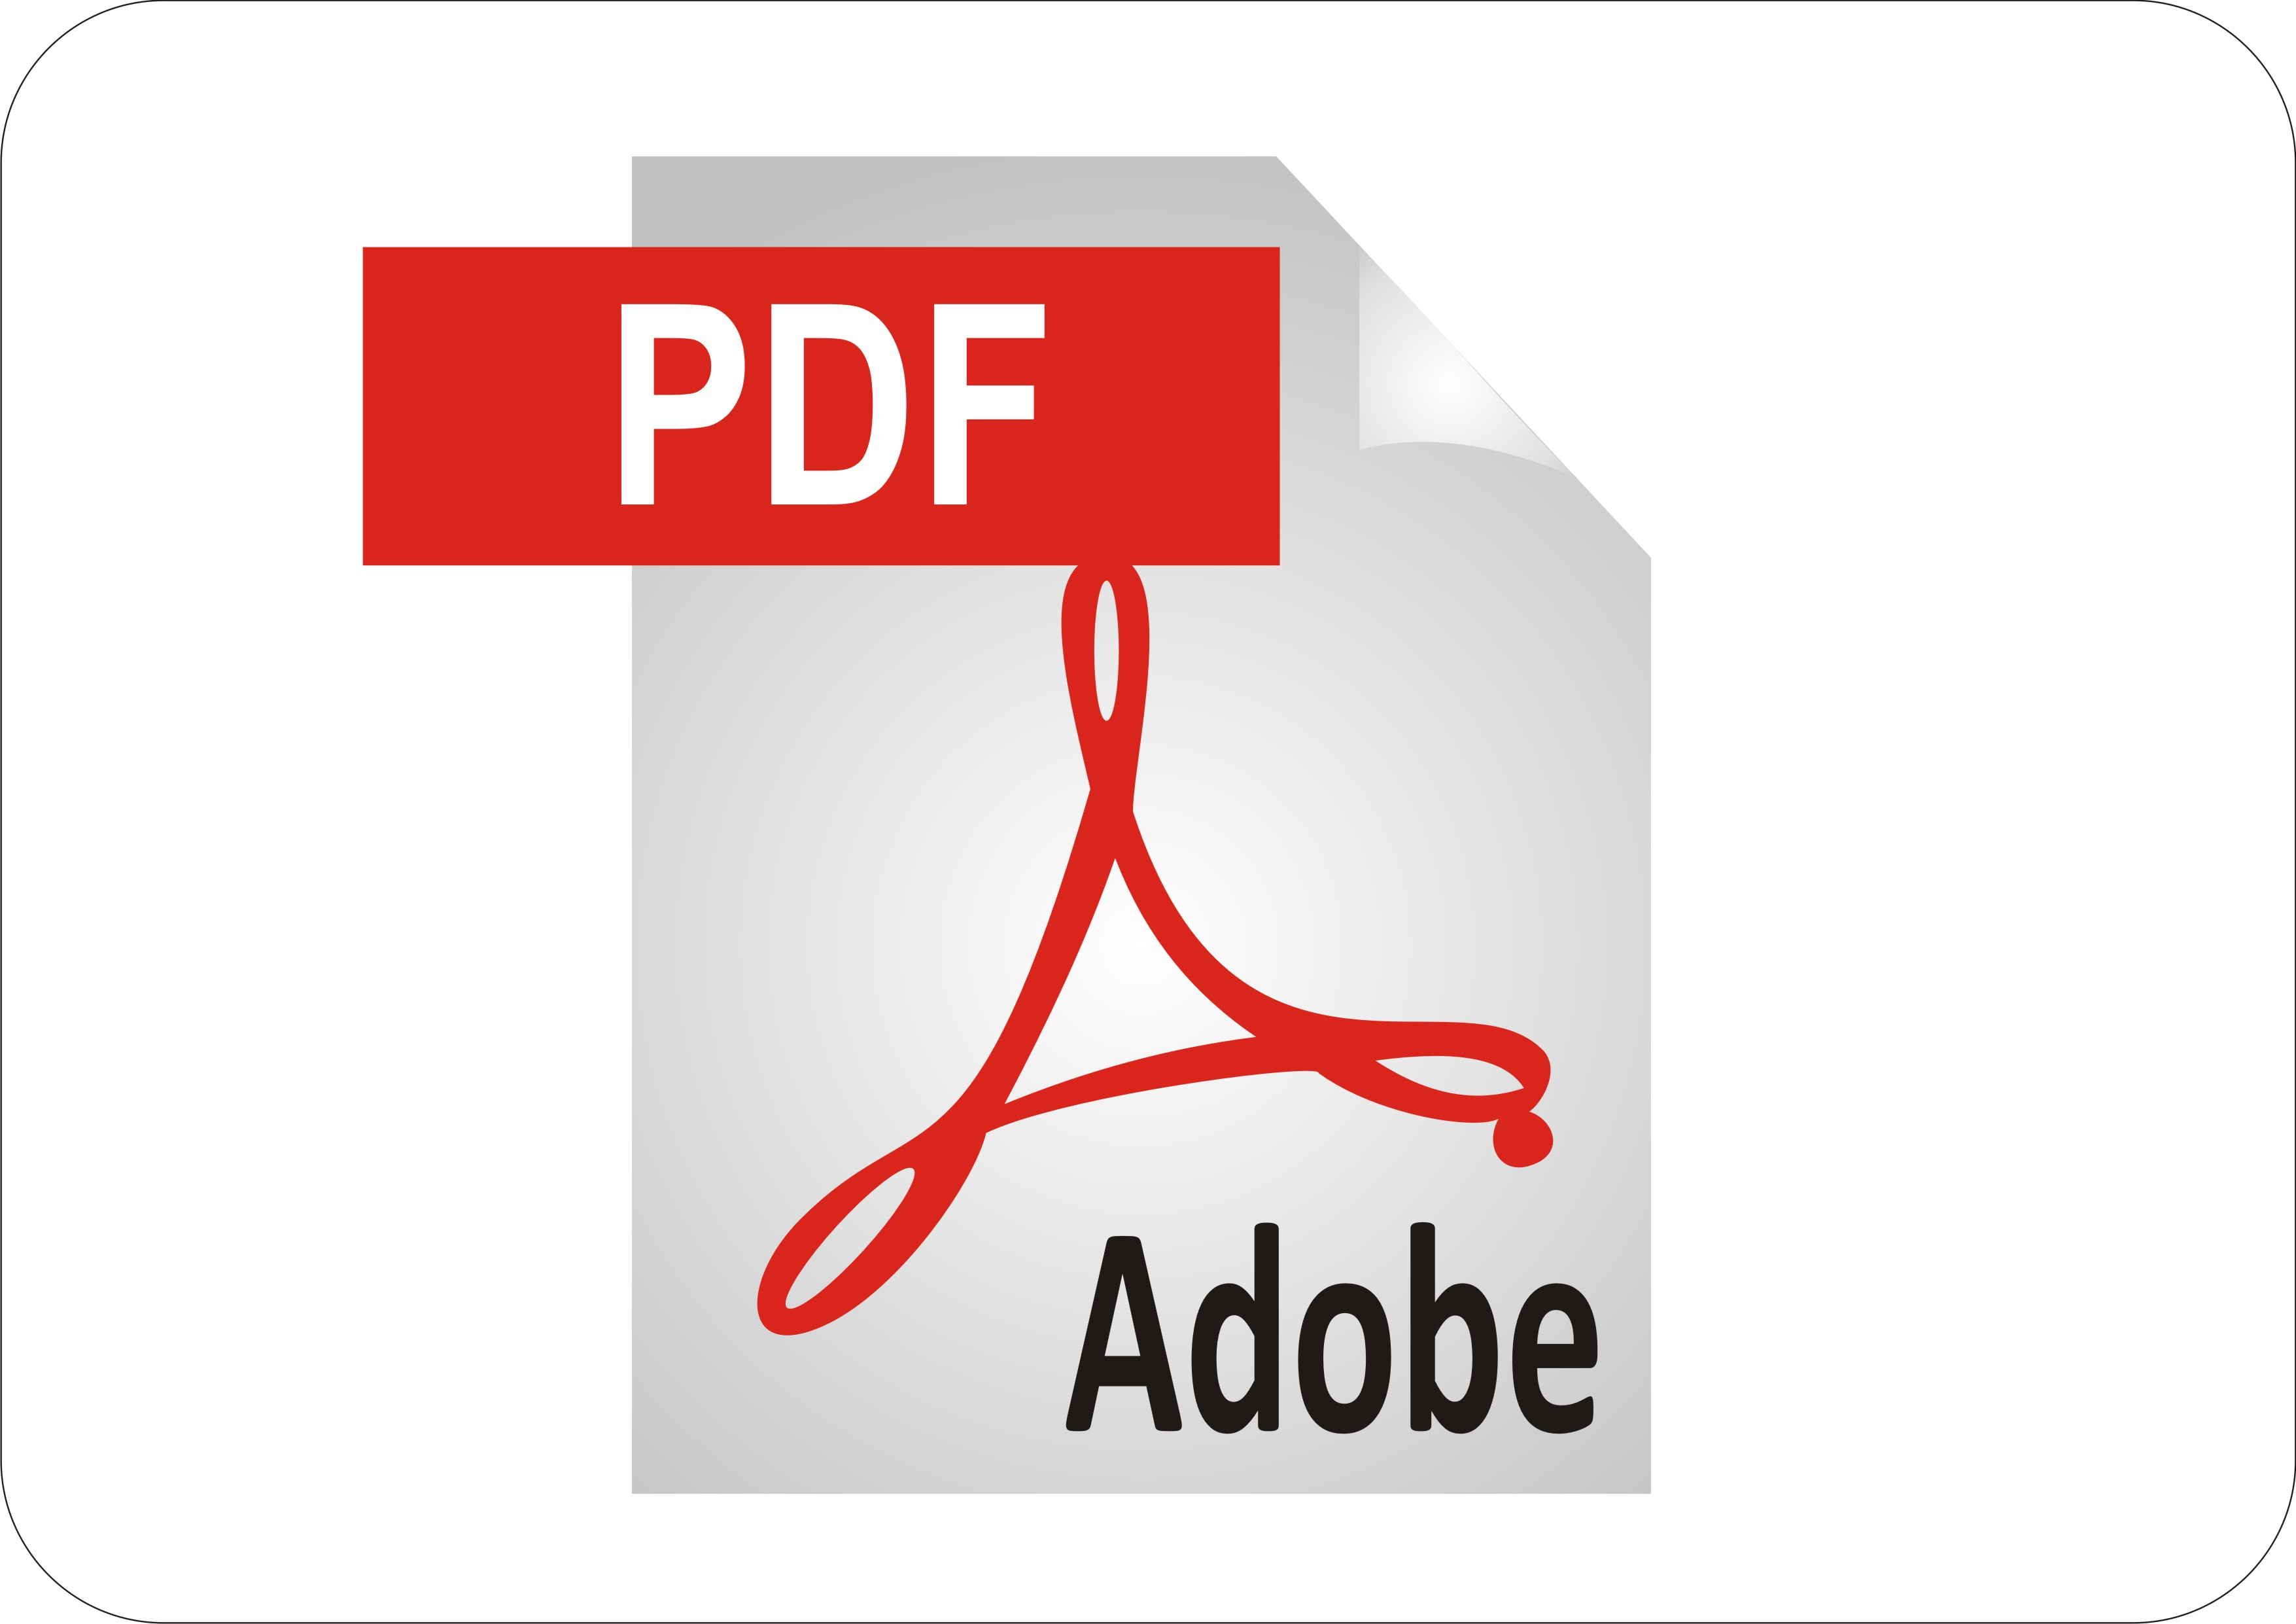 Convert text and images from over 100 formats to PDF files